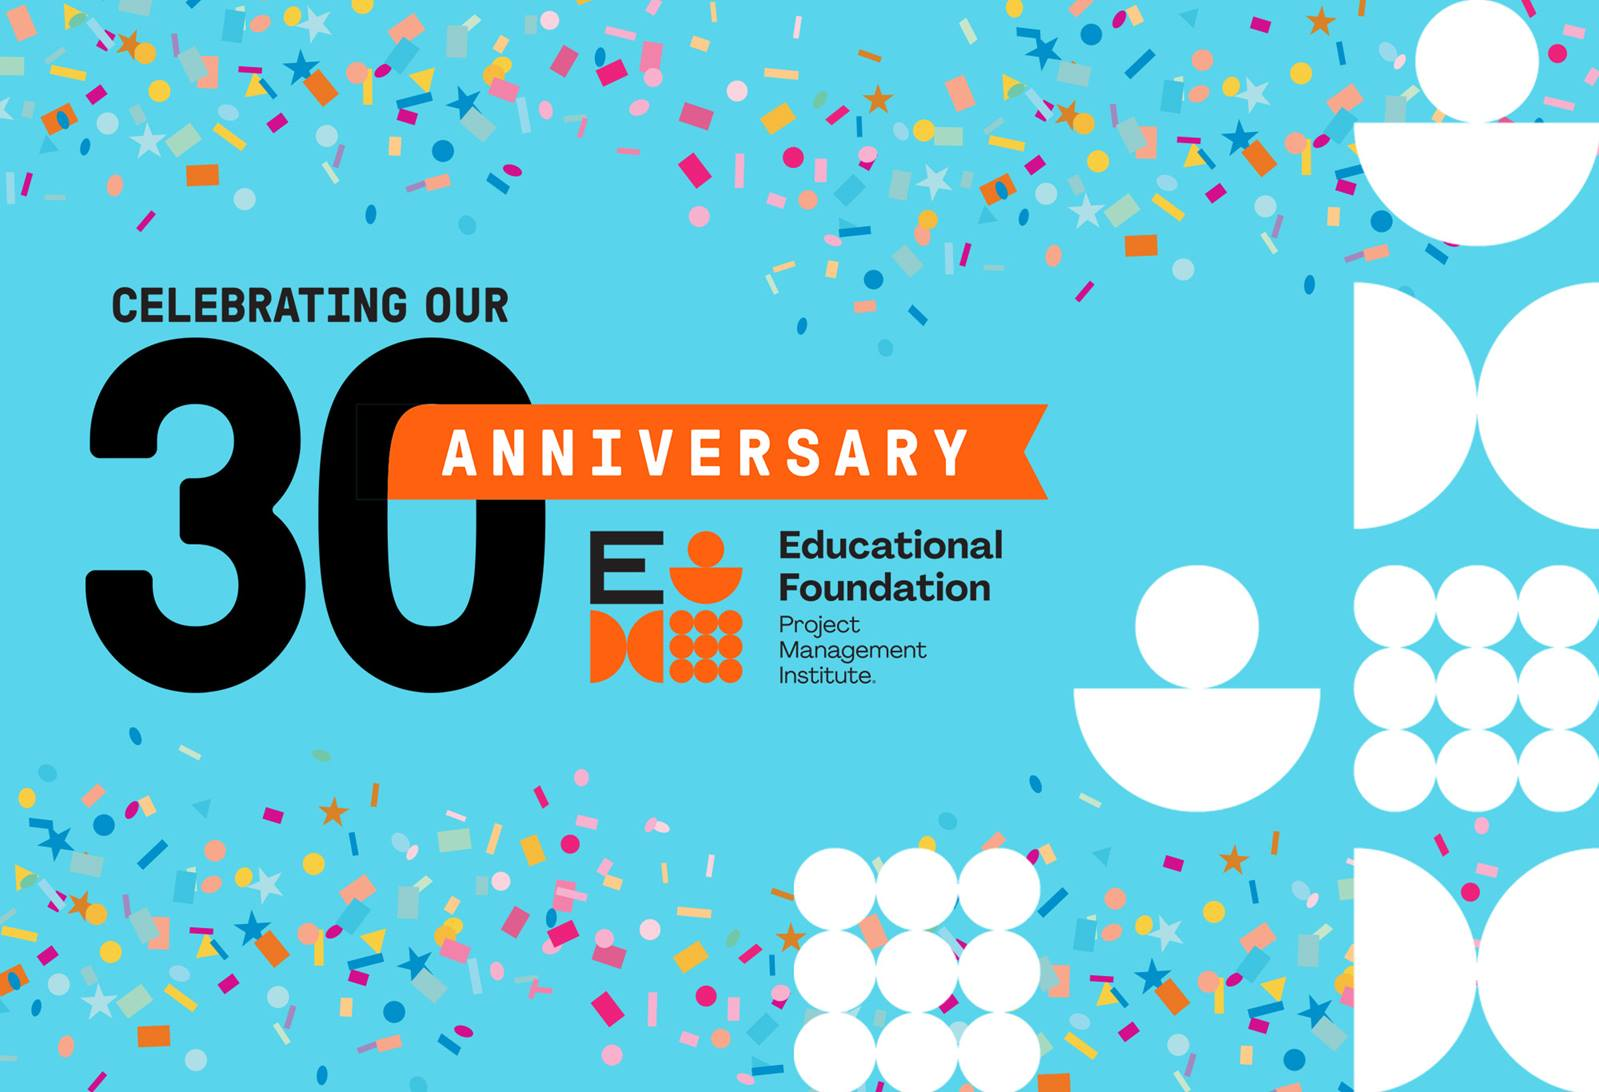 PMI Educational Foundation (PMIEF) 30 Anniversary Image